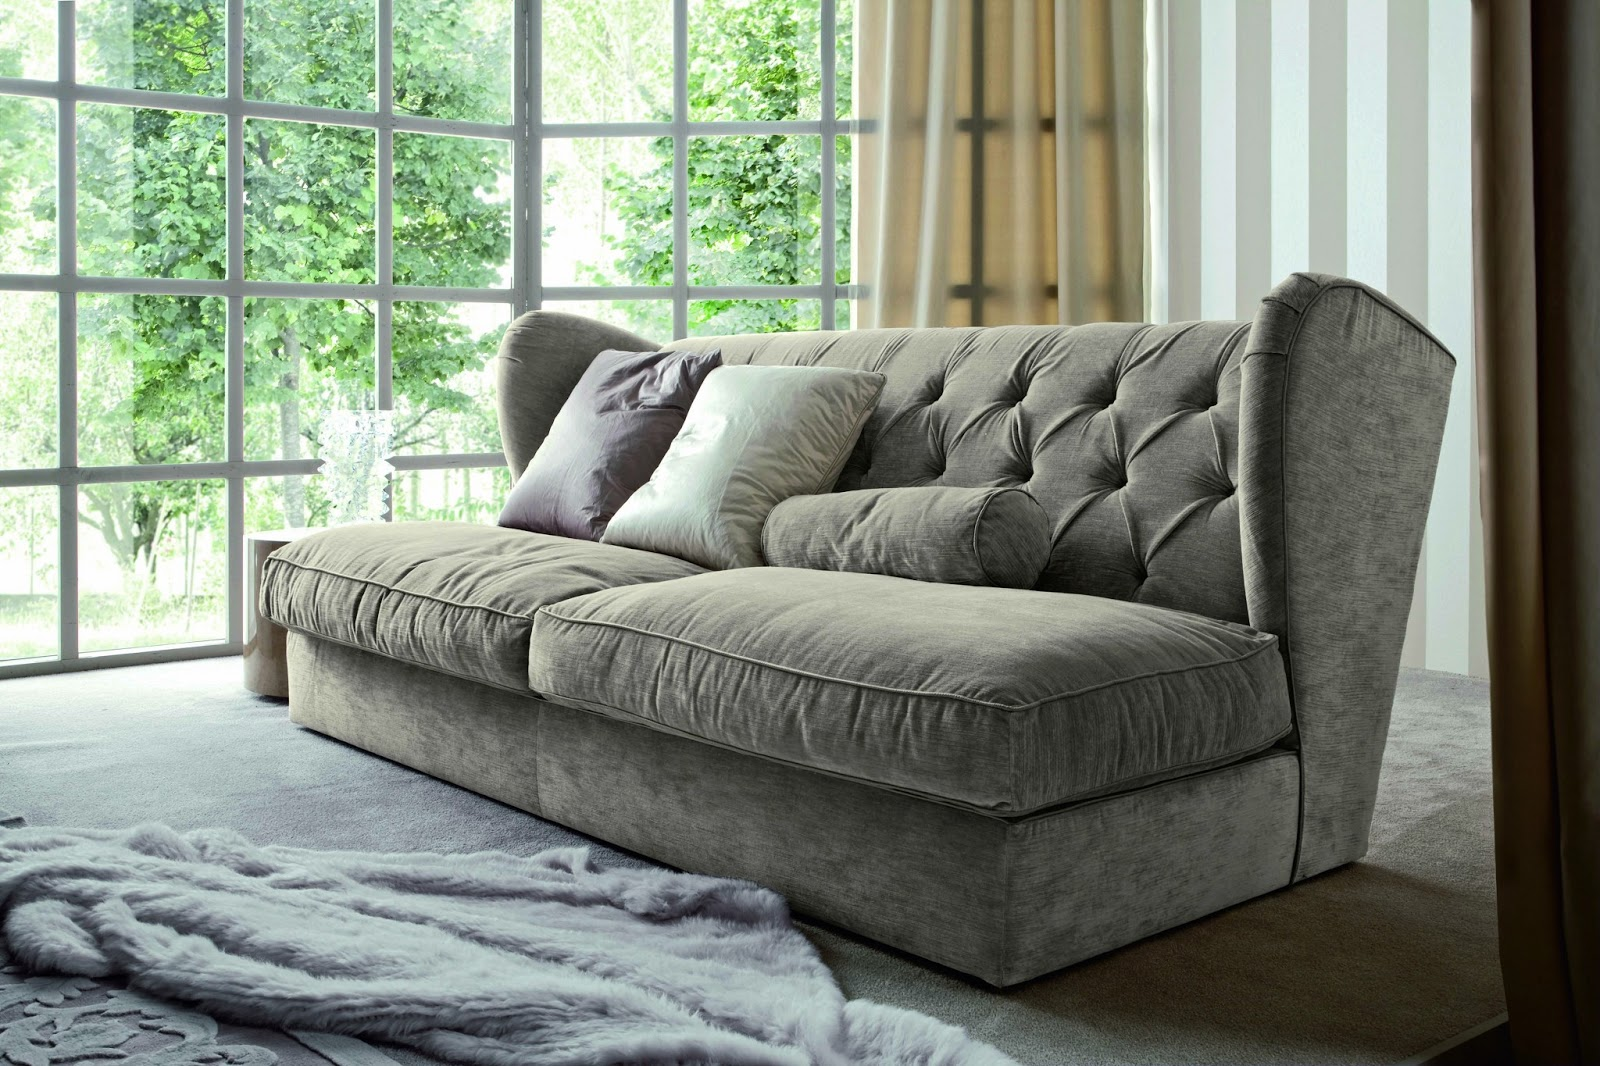 living sofa design textured linen slipcover modern furniture 2013 room sofas